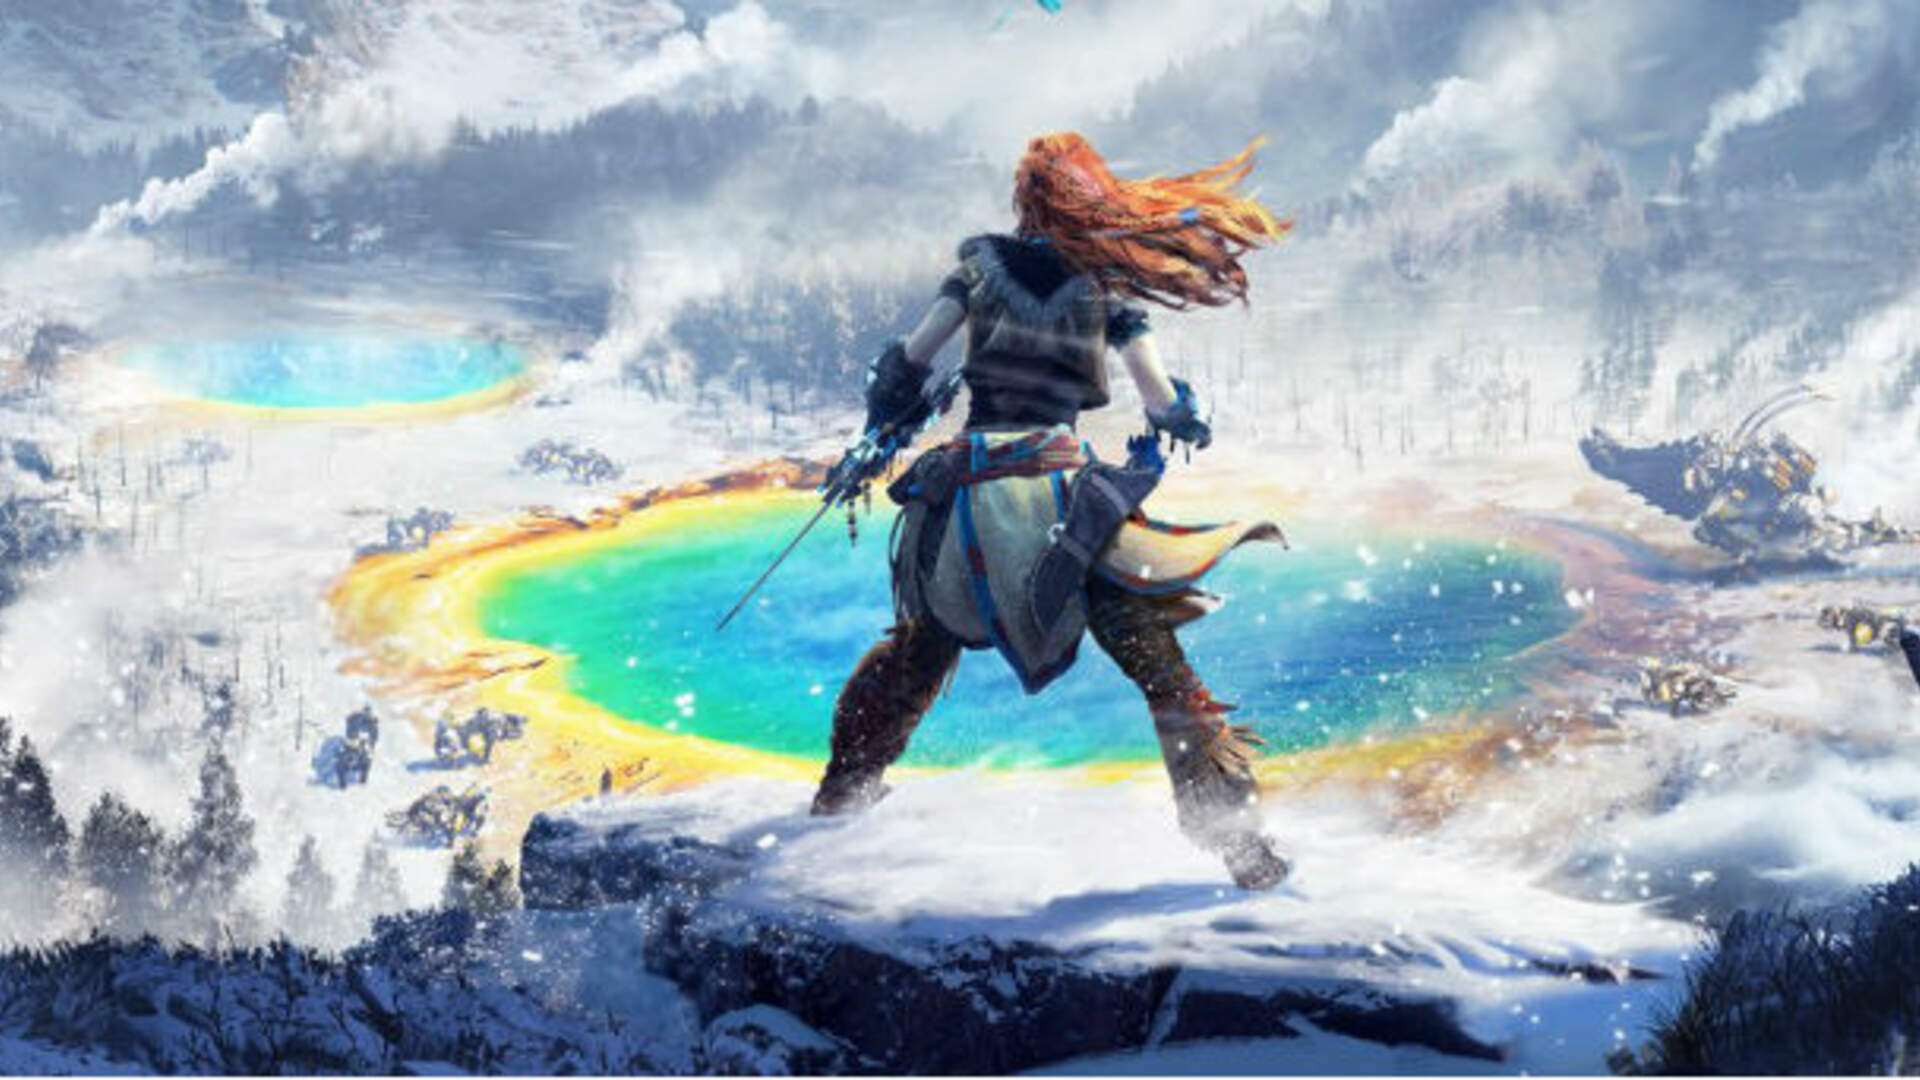 Horizon Zero Dawn: The Frozen Wilds Gets a Release Date